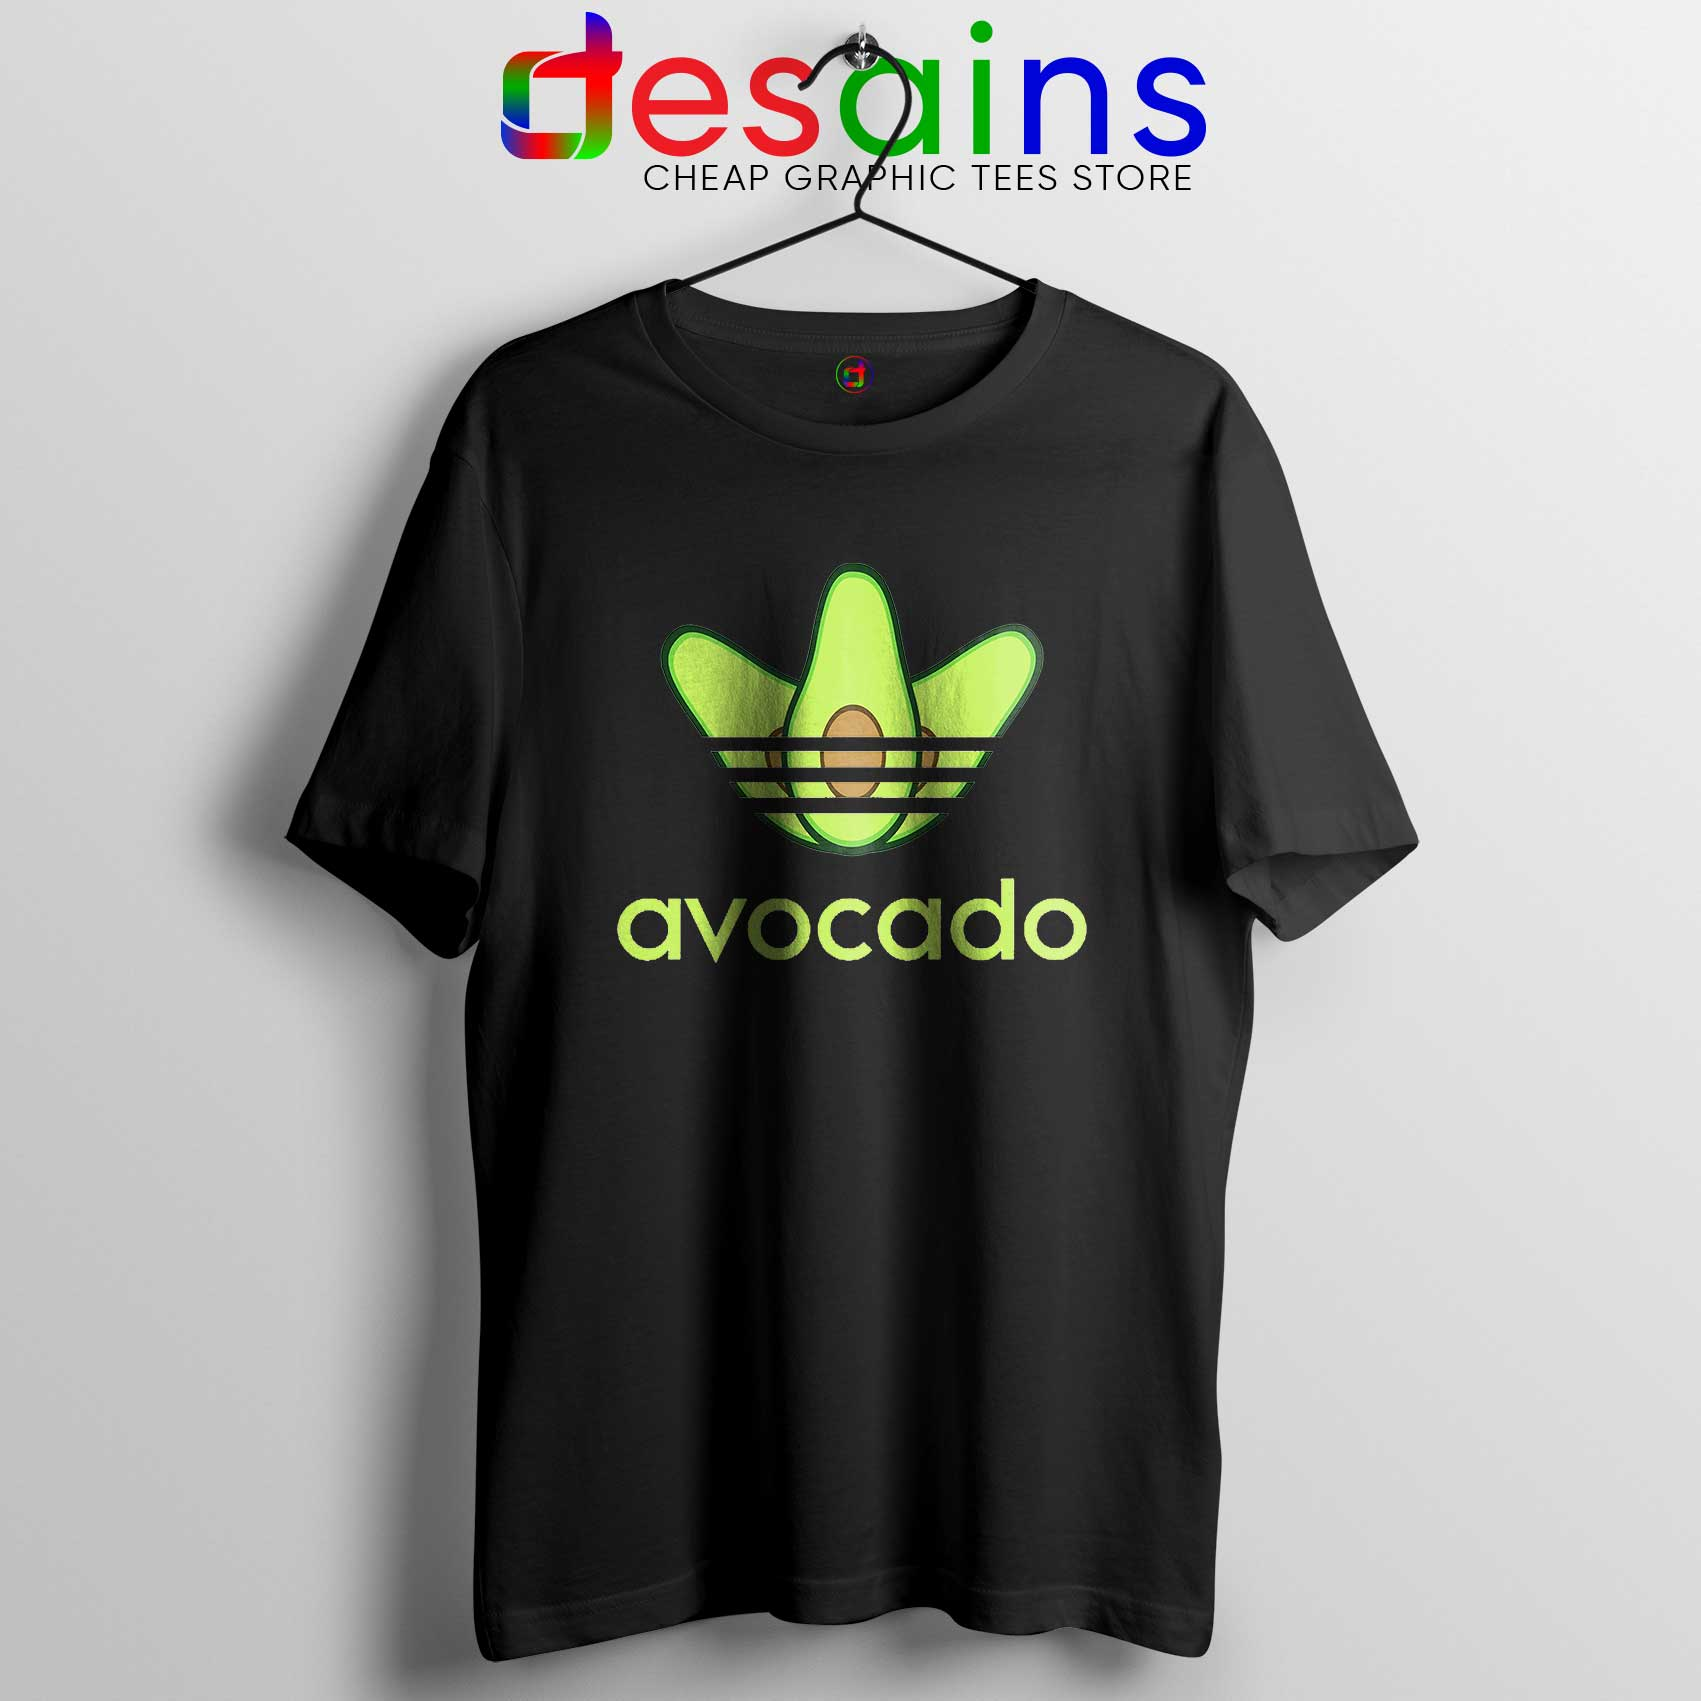 en soldes 04548 79107 Avocado Originals Three Stripes Tee Shirt Cheap Adidas Size S-3XL